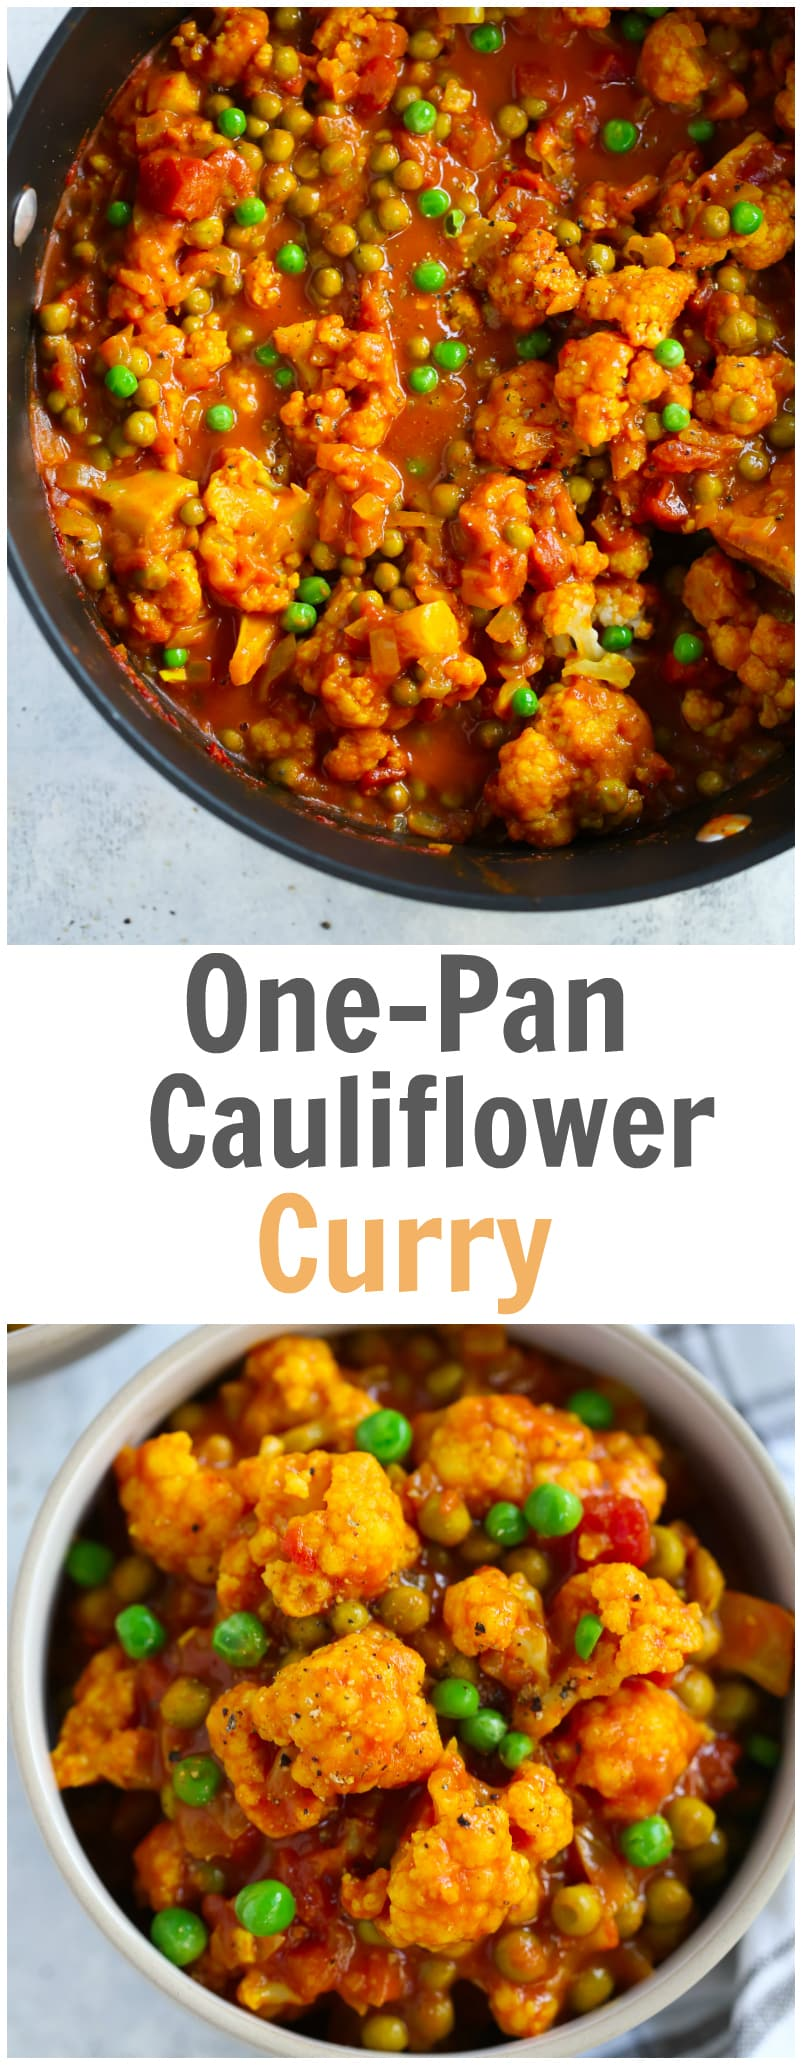 Easy One-Pan Cauliflower Curry Recipe is ready in 20 minutes. It's made with cauliflower, green peas, diced tomatoes, curry and coconut milk. Also this recipe is gluten-free, vegan and if you don't add green peas it's low-carb too.